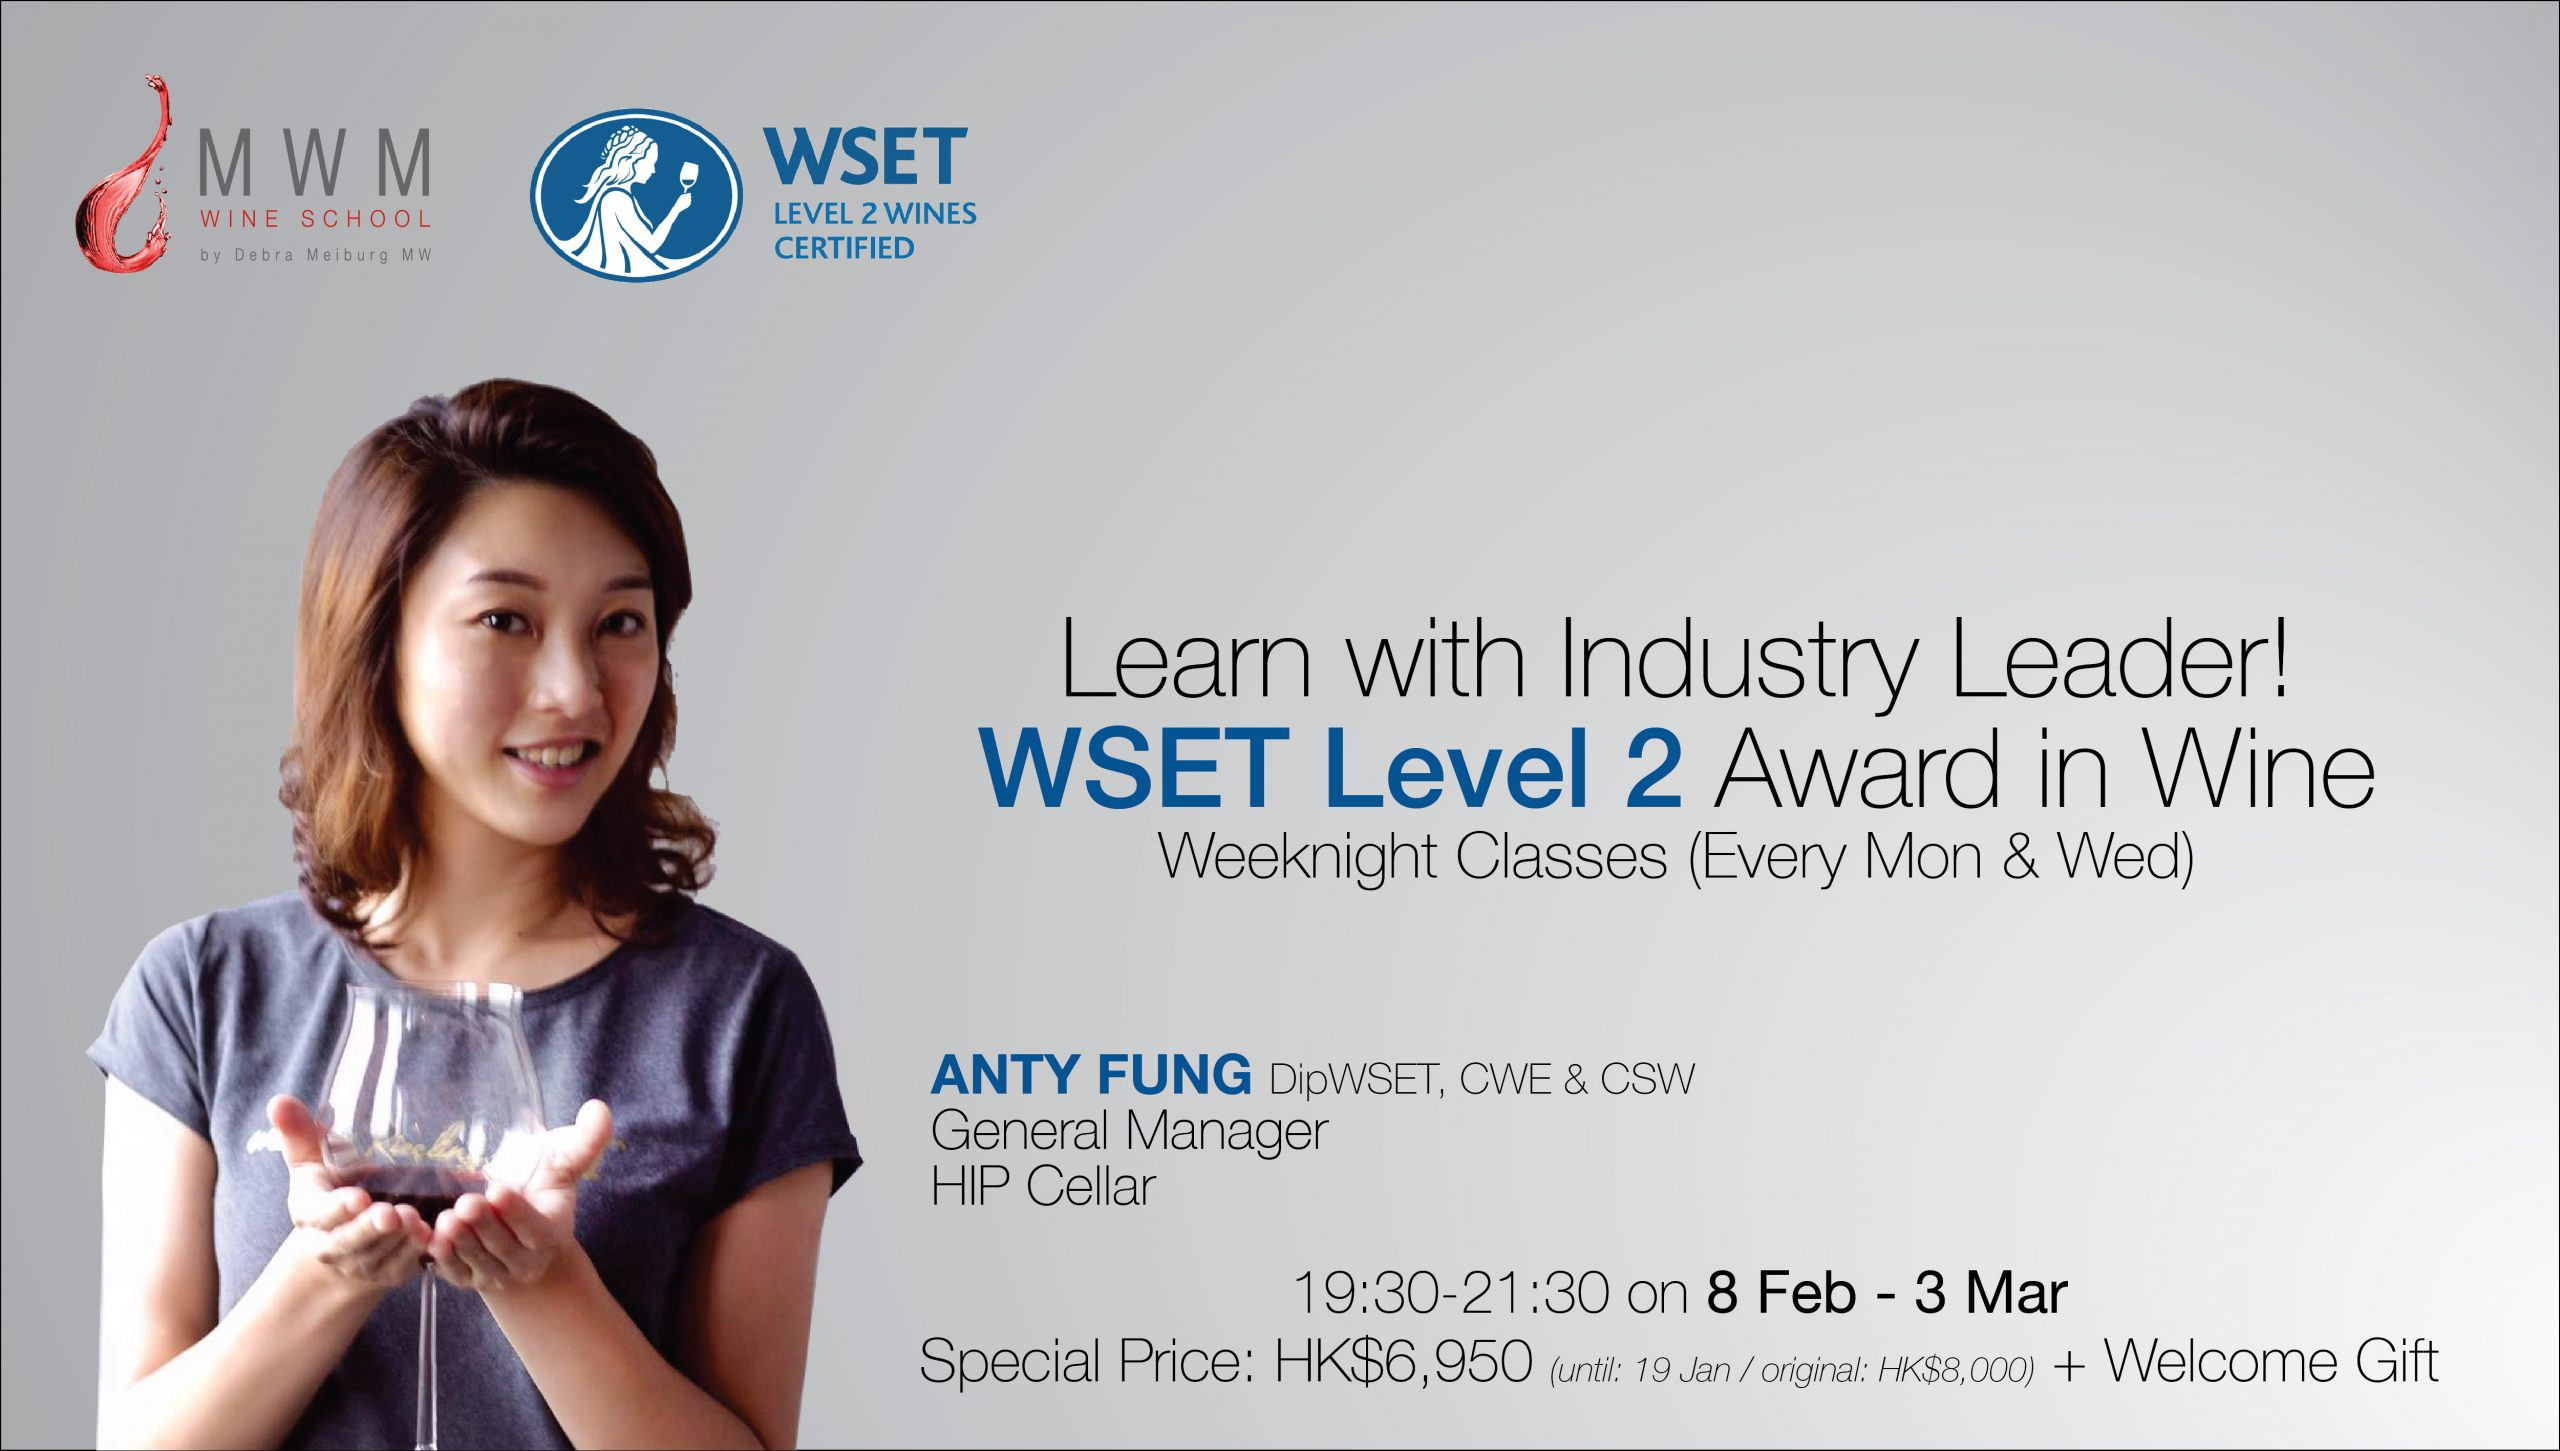 WSET Level 2 by Anty Fung